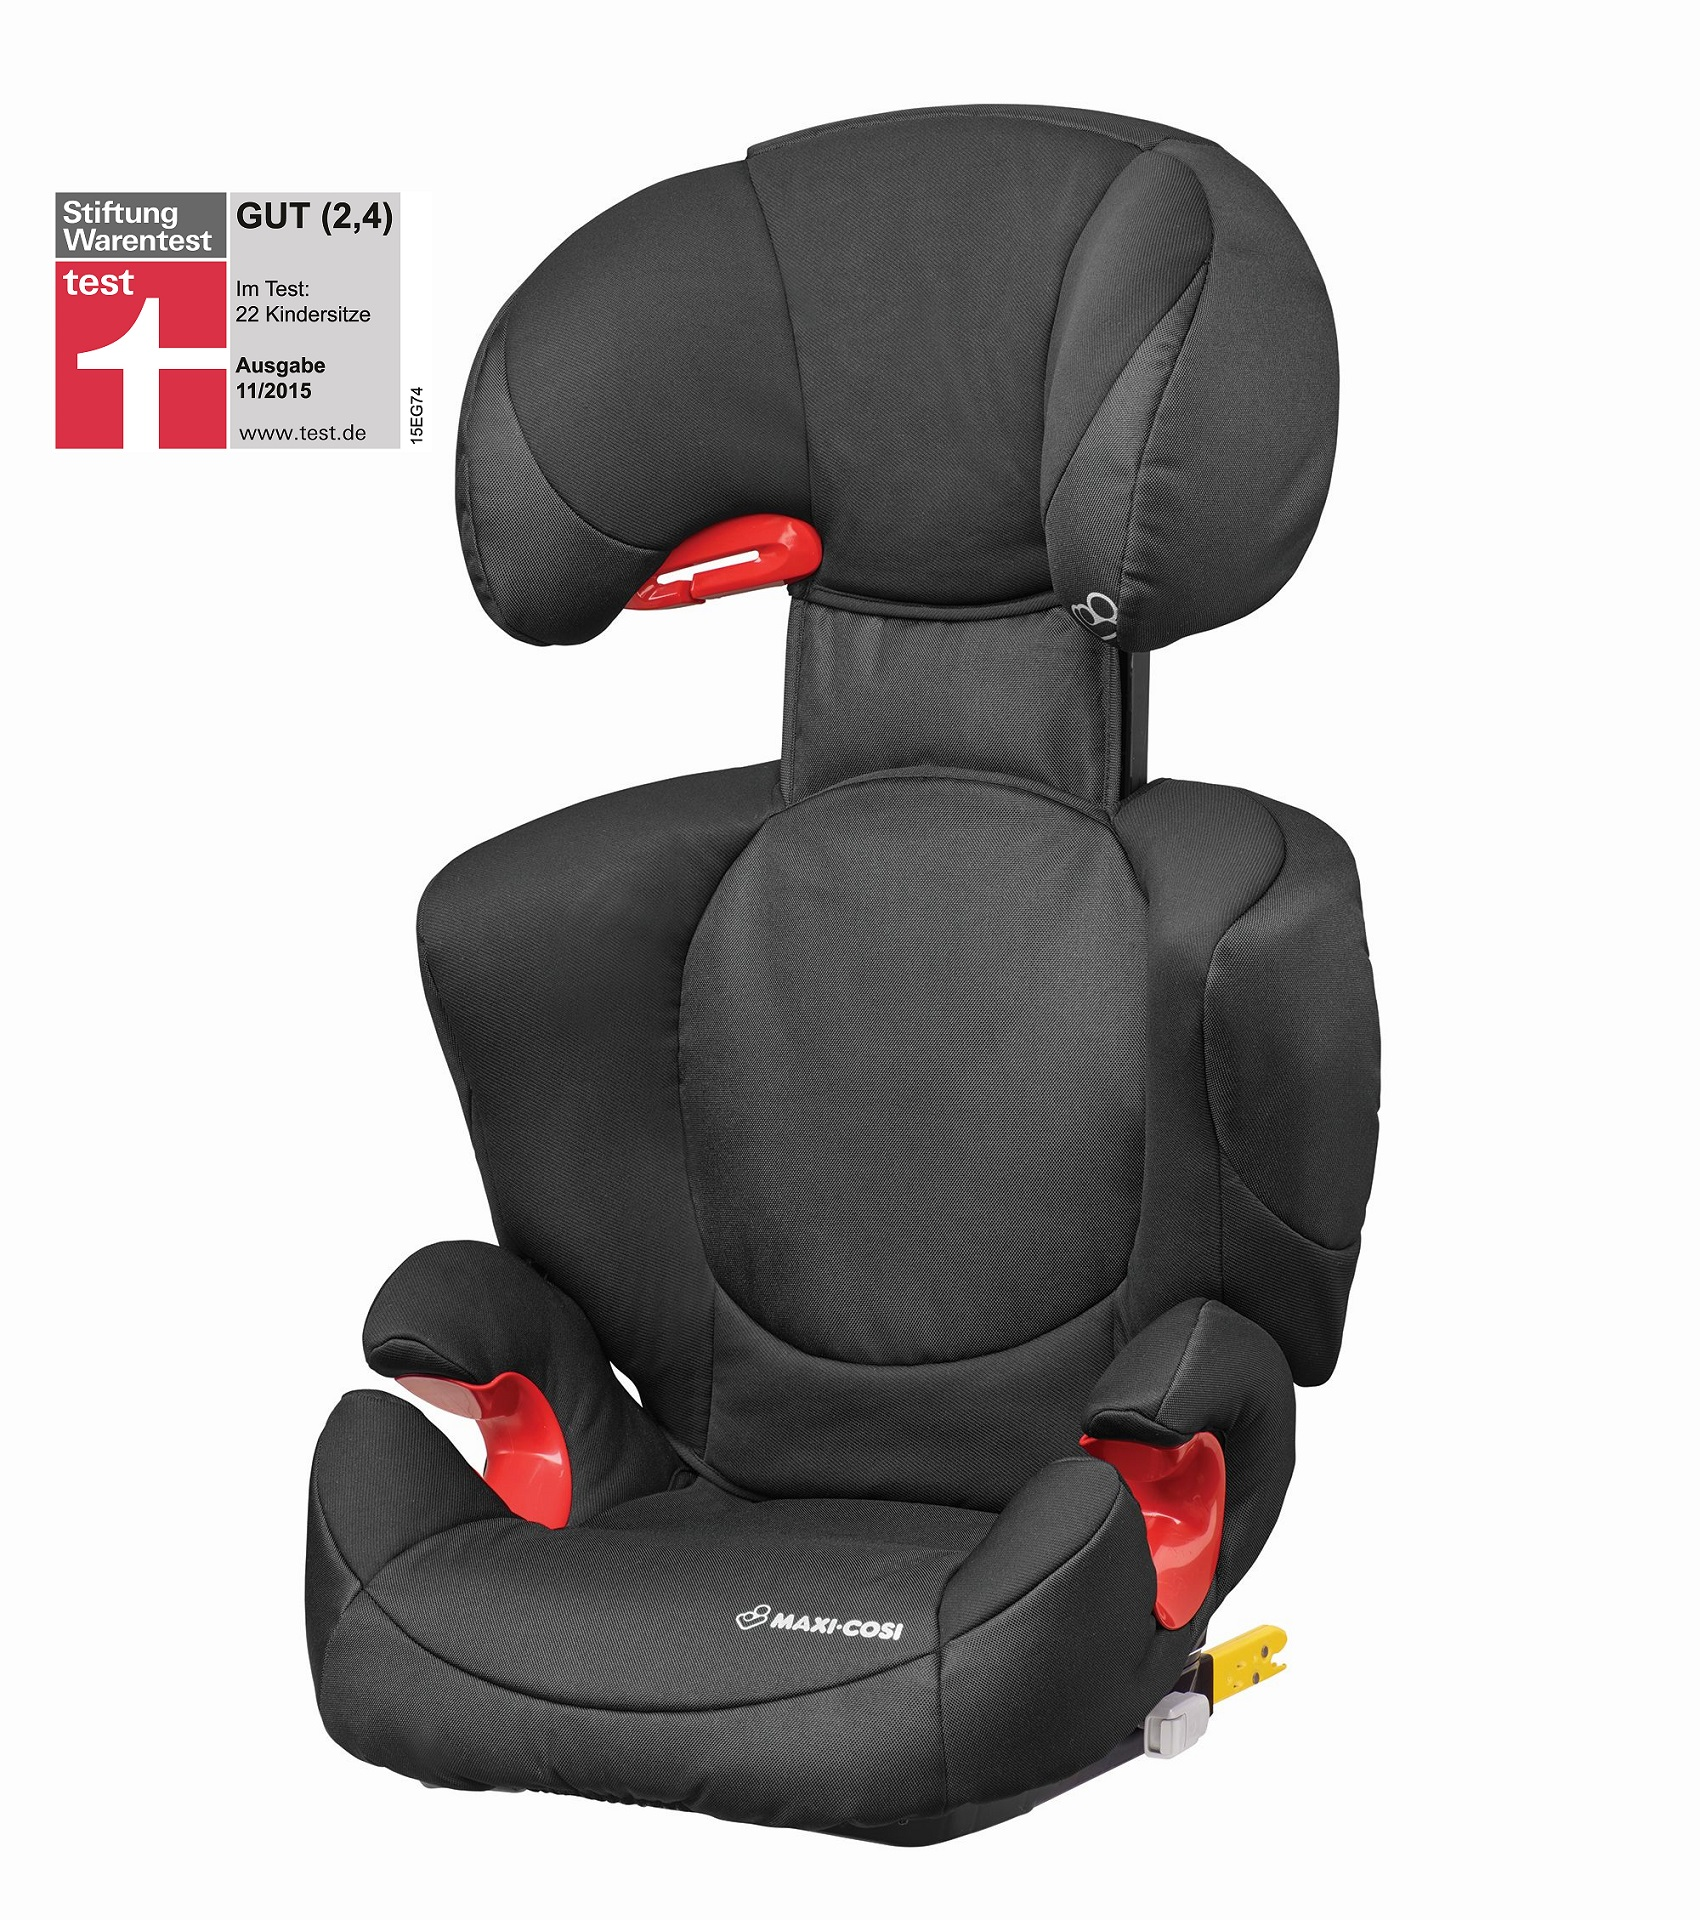 maxi cosi child car seat rodi xp fix 2018 night black. Black Bedroom Furniture Sets. Home Design Ideas